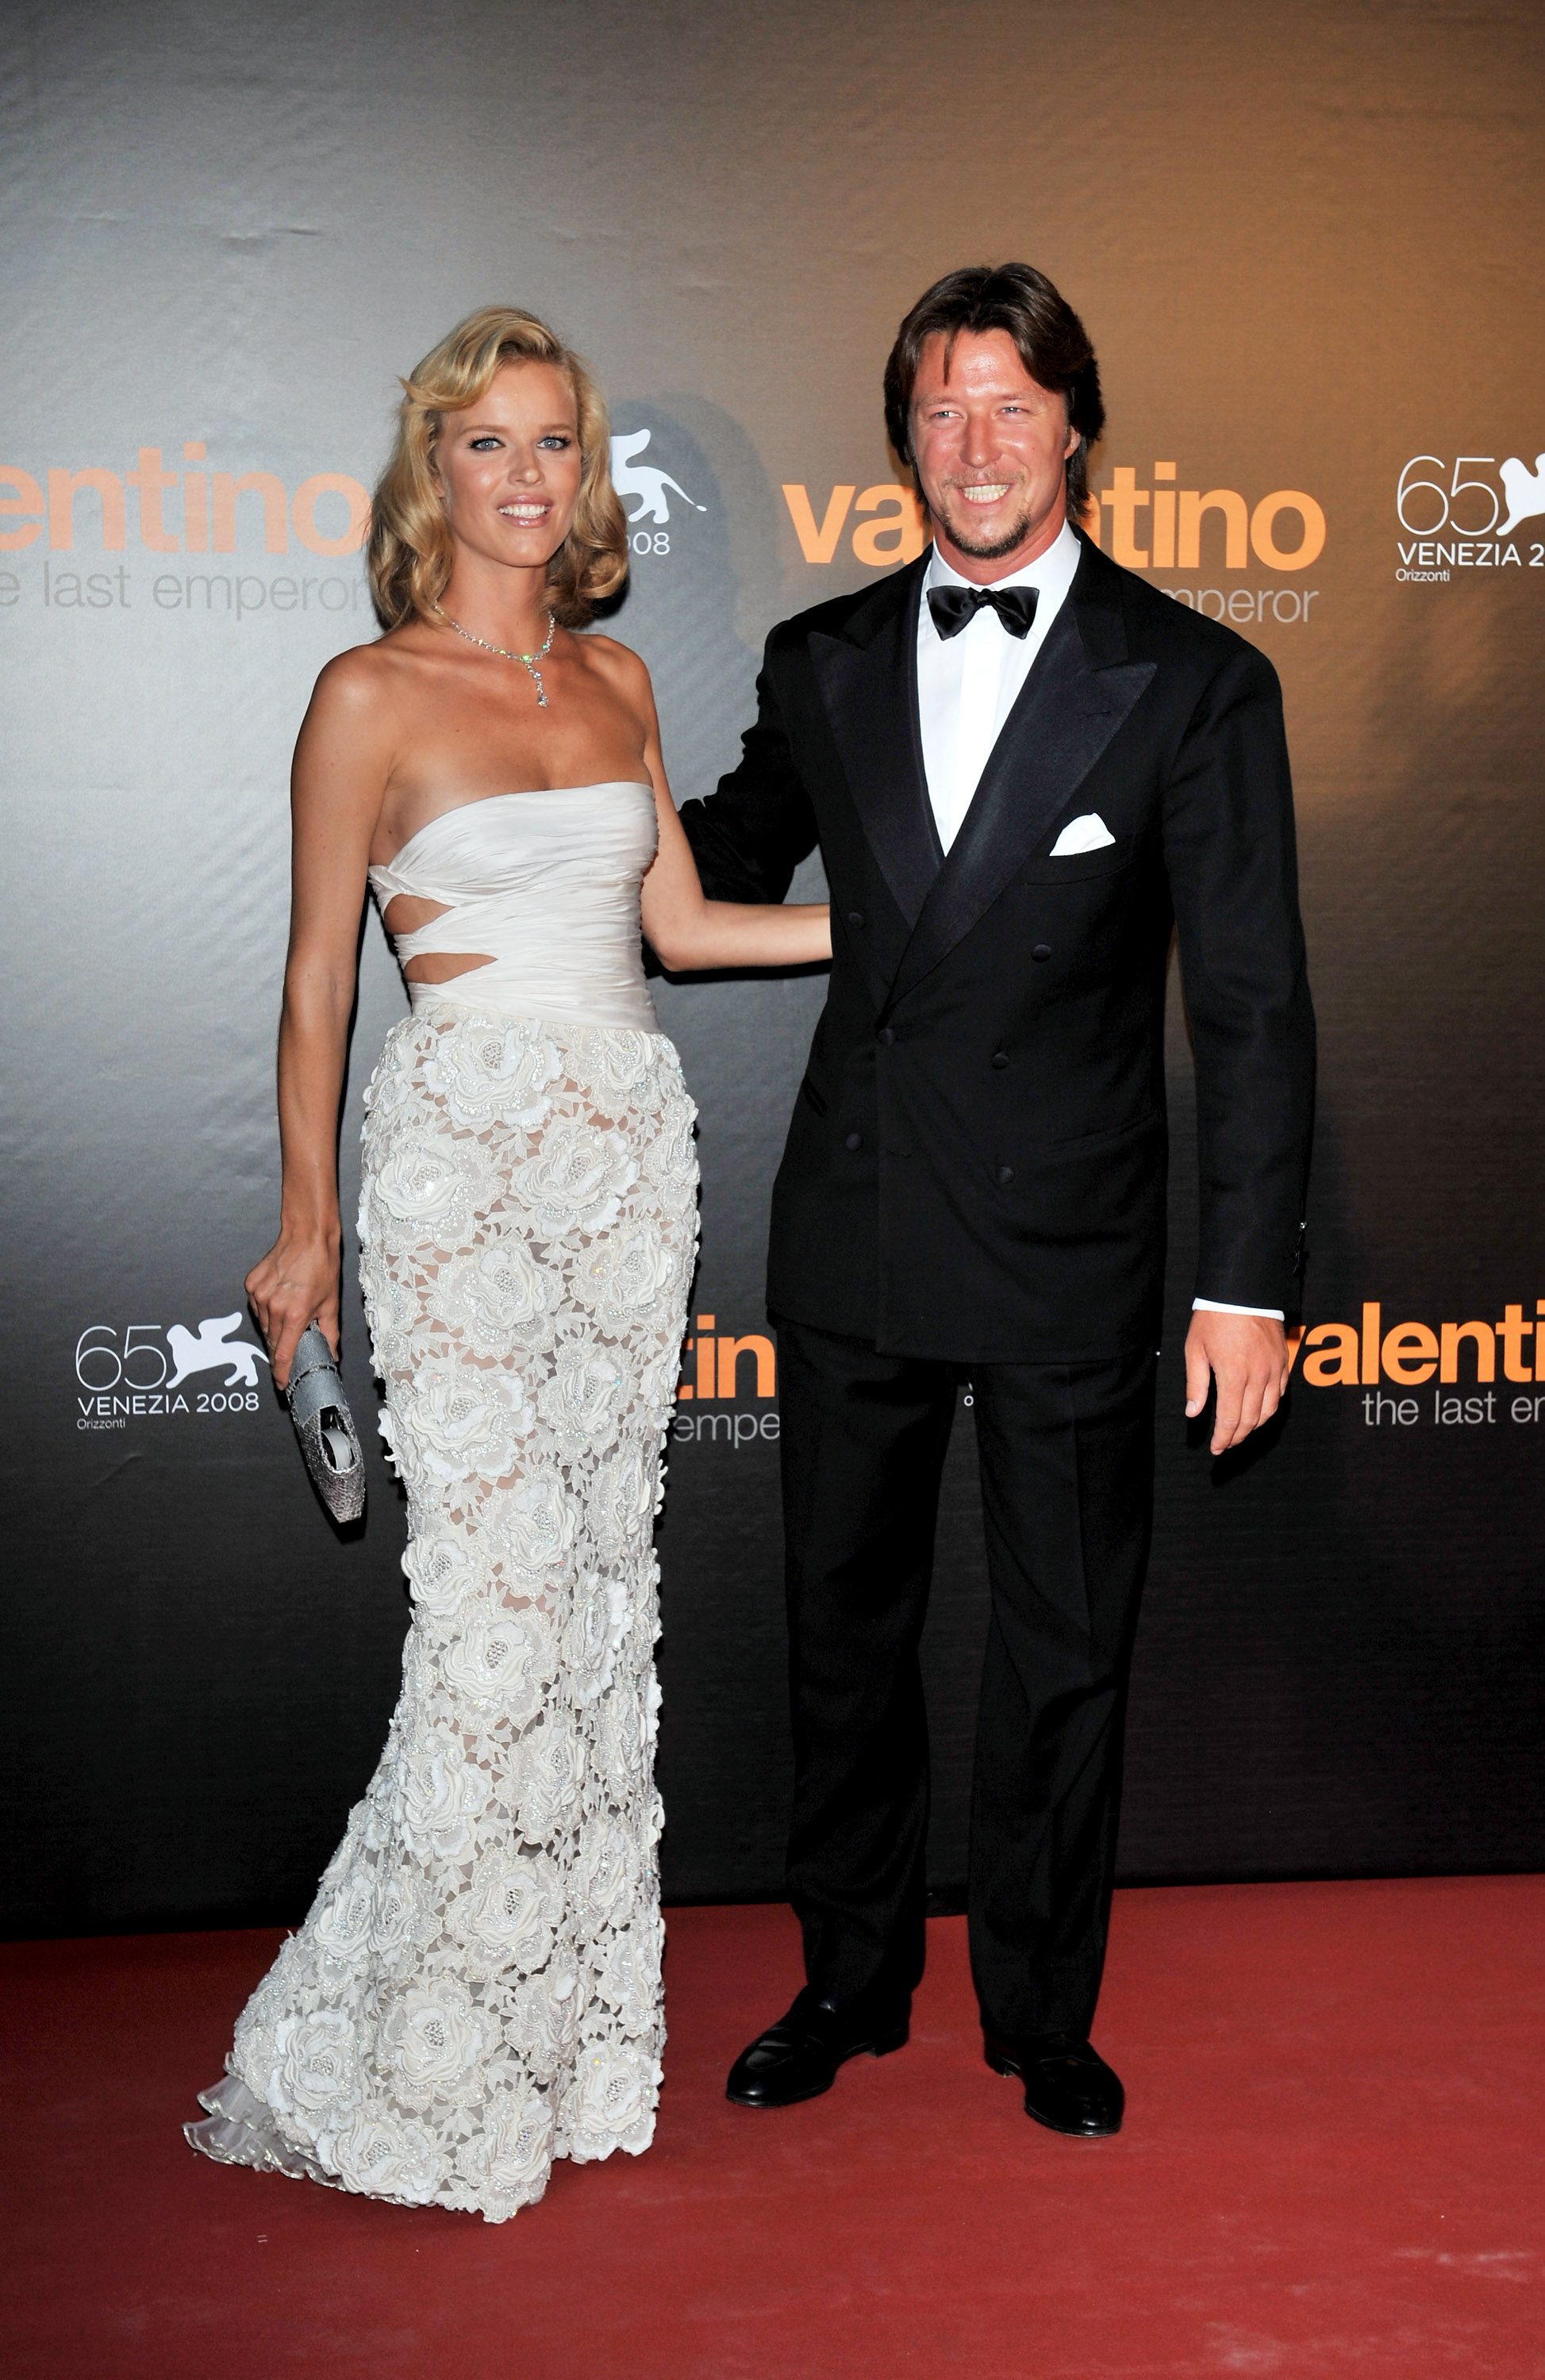 Eva Herzigova and Gregorio Marsiaj